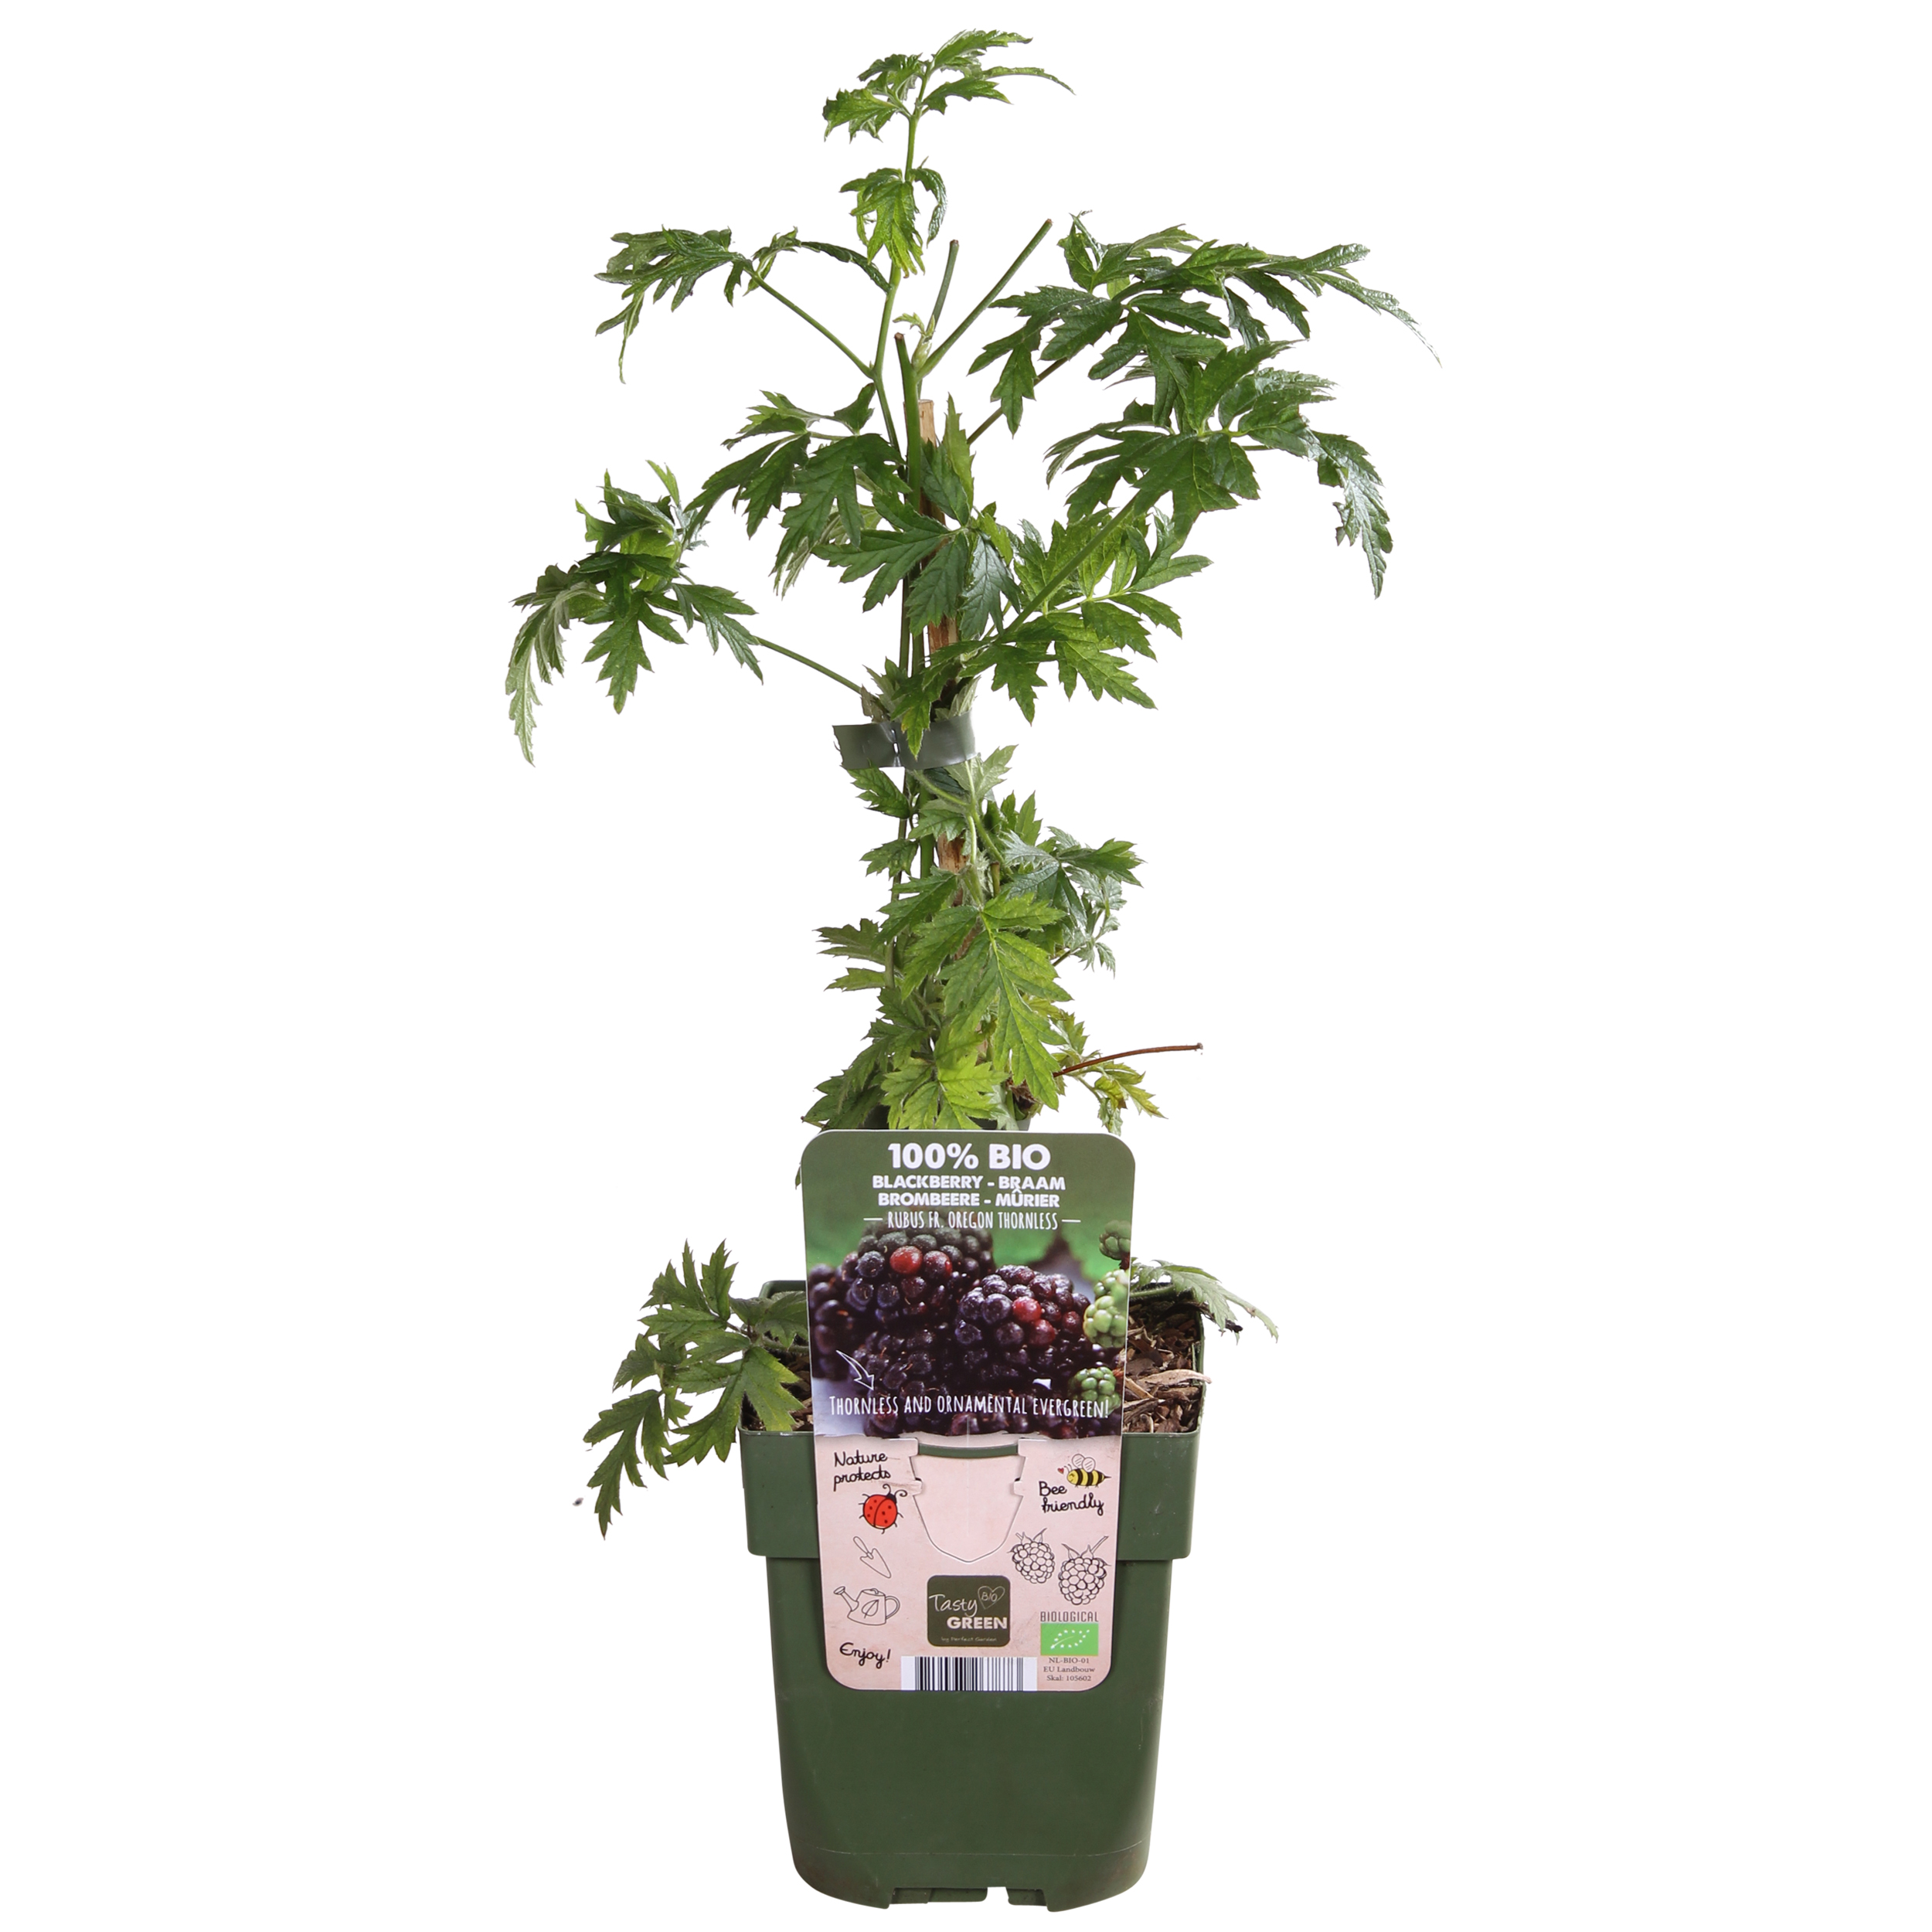 Obstpflanze – Brombeere – Höhe: 55 cm